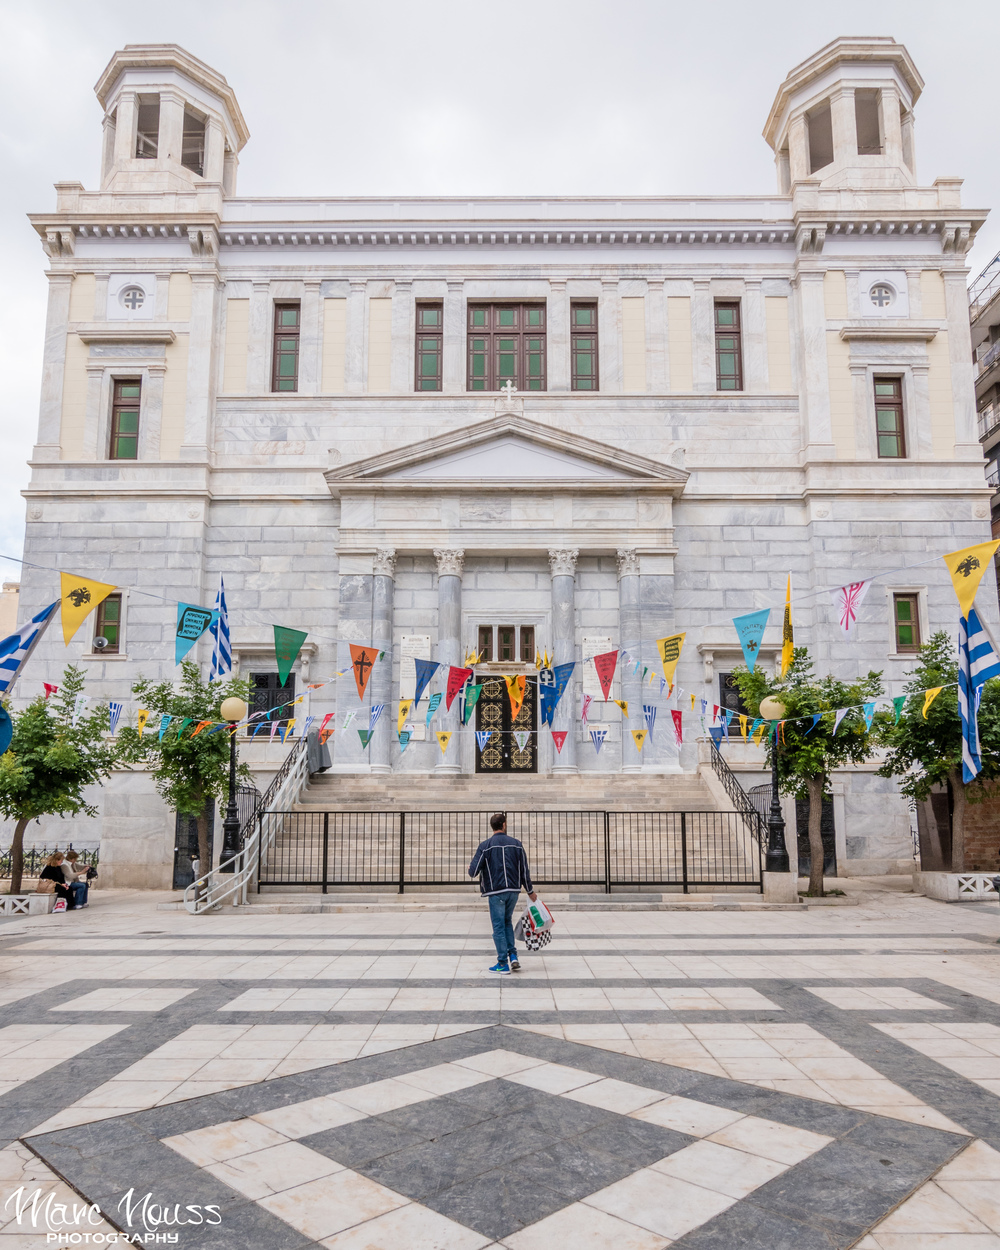 Let's continue the visit with the beautiful churches of Athens.